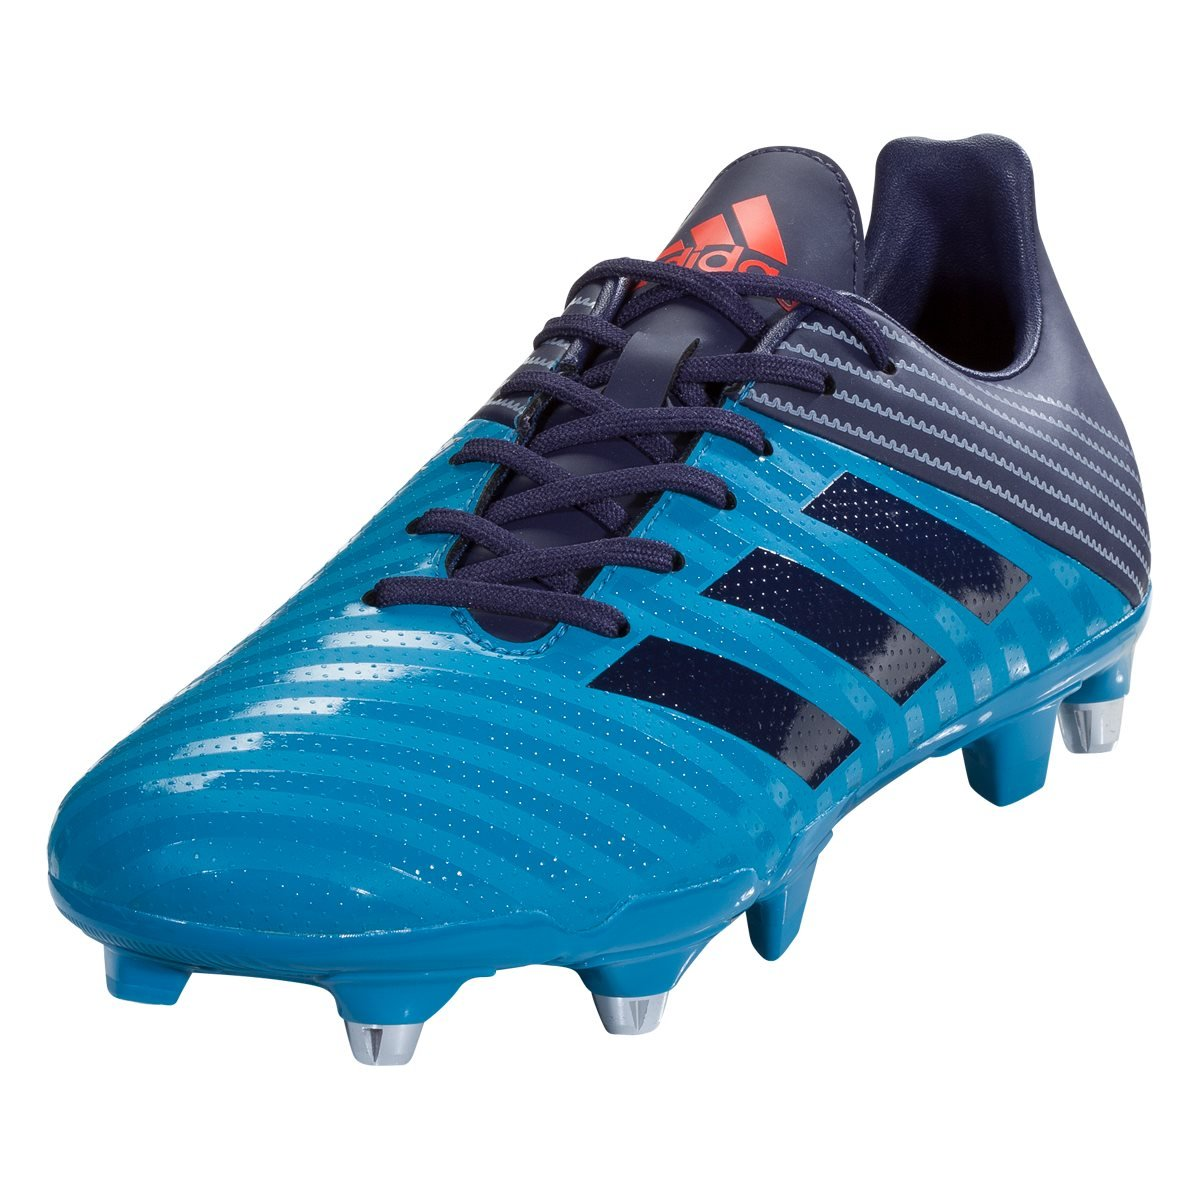 adidas Malice SG Rugby Boot - Blue BY2006